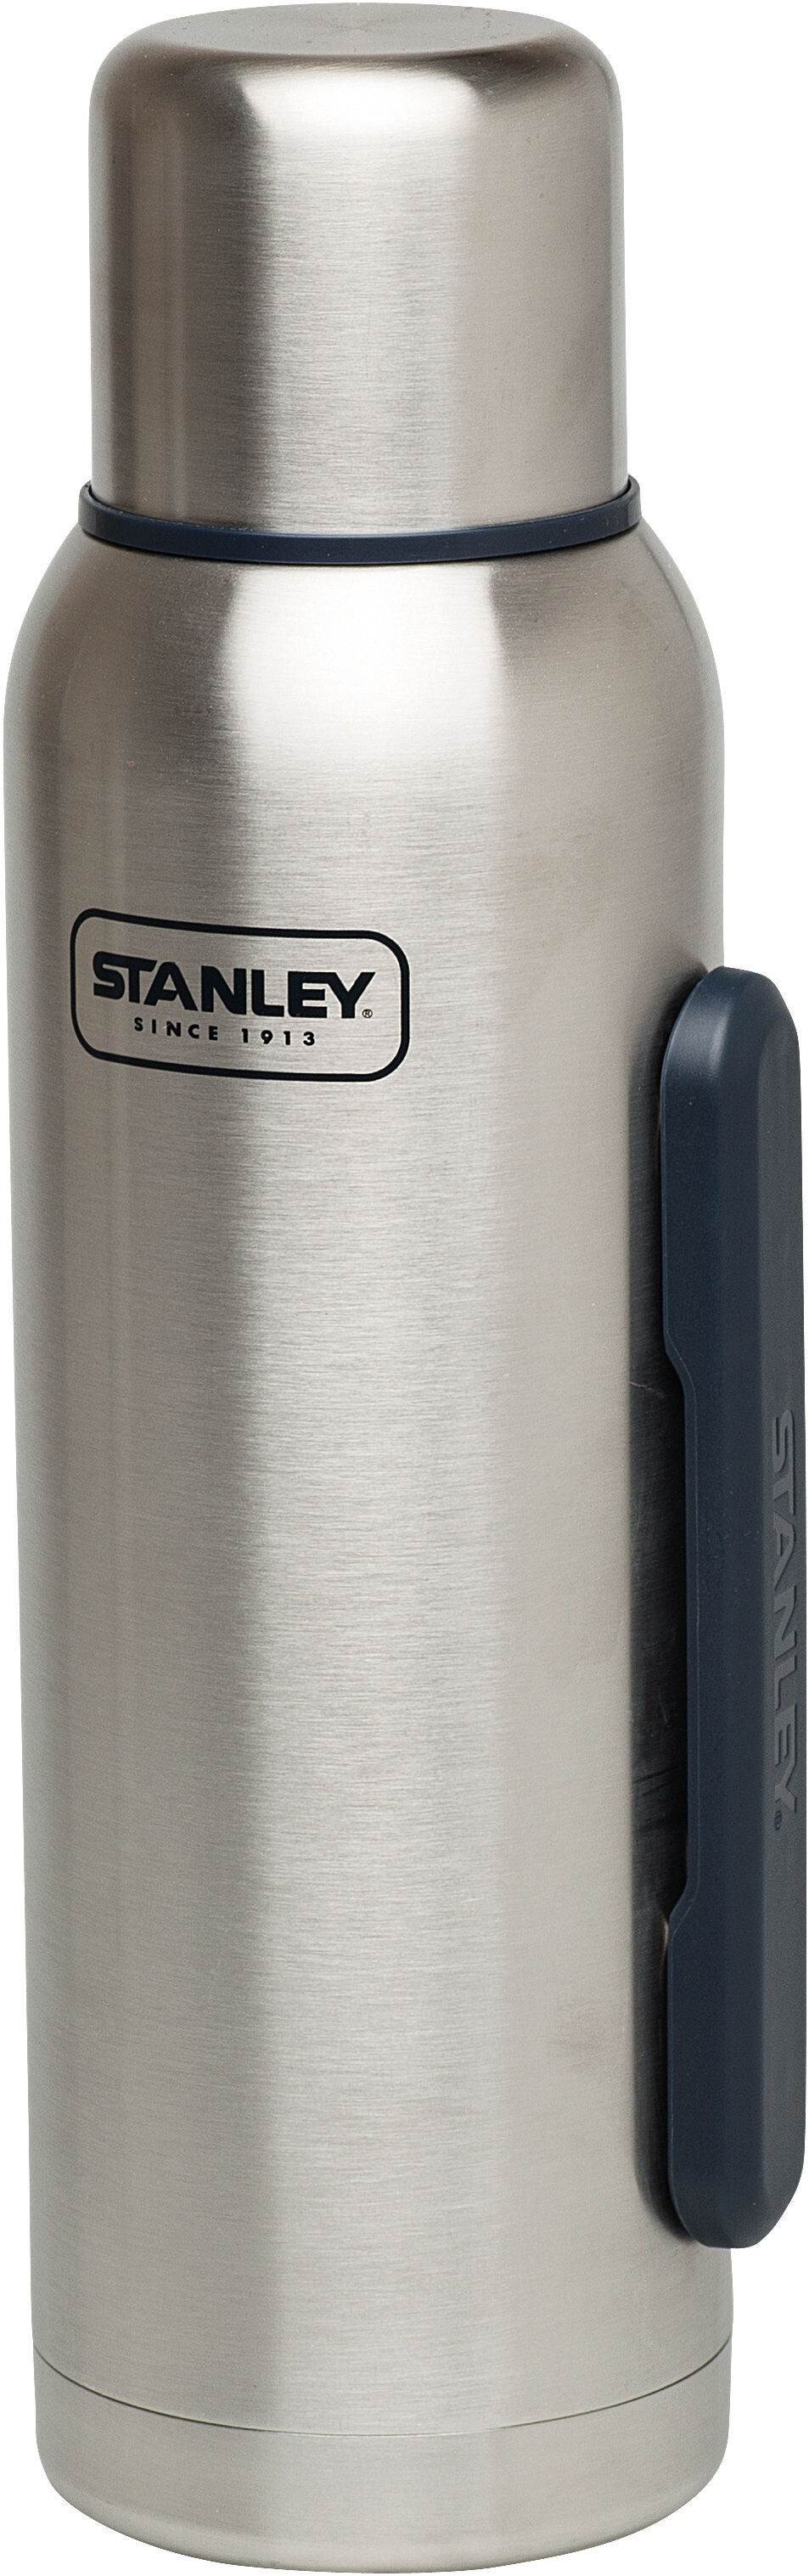 Stanley Adventure Bottle 1300ml Silver At Addnature Co Uk